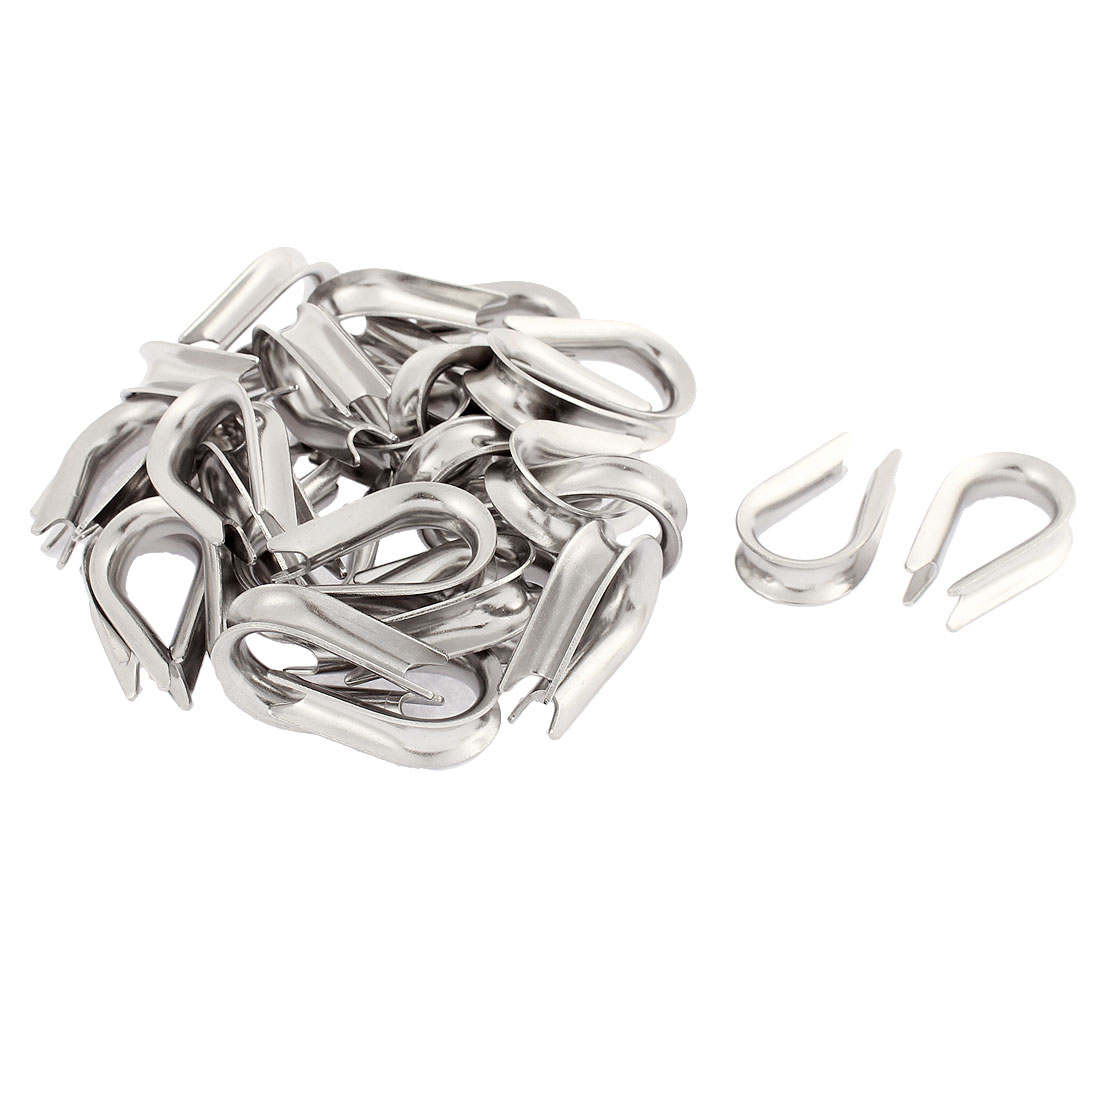 5mm Standard Wire Rope Cable Thimbles Lifting Gear Silver Tone 30pcs